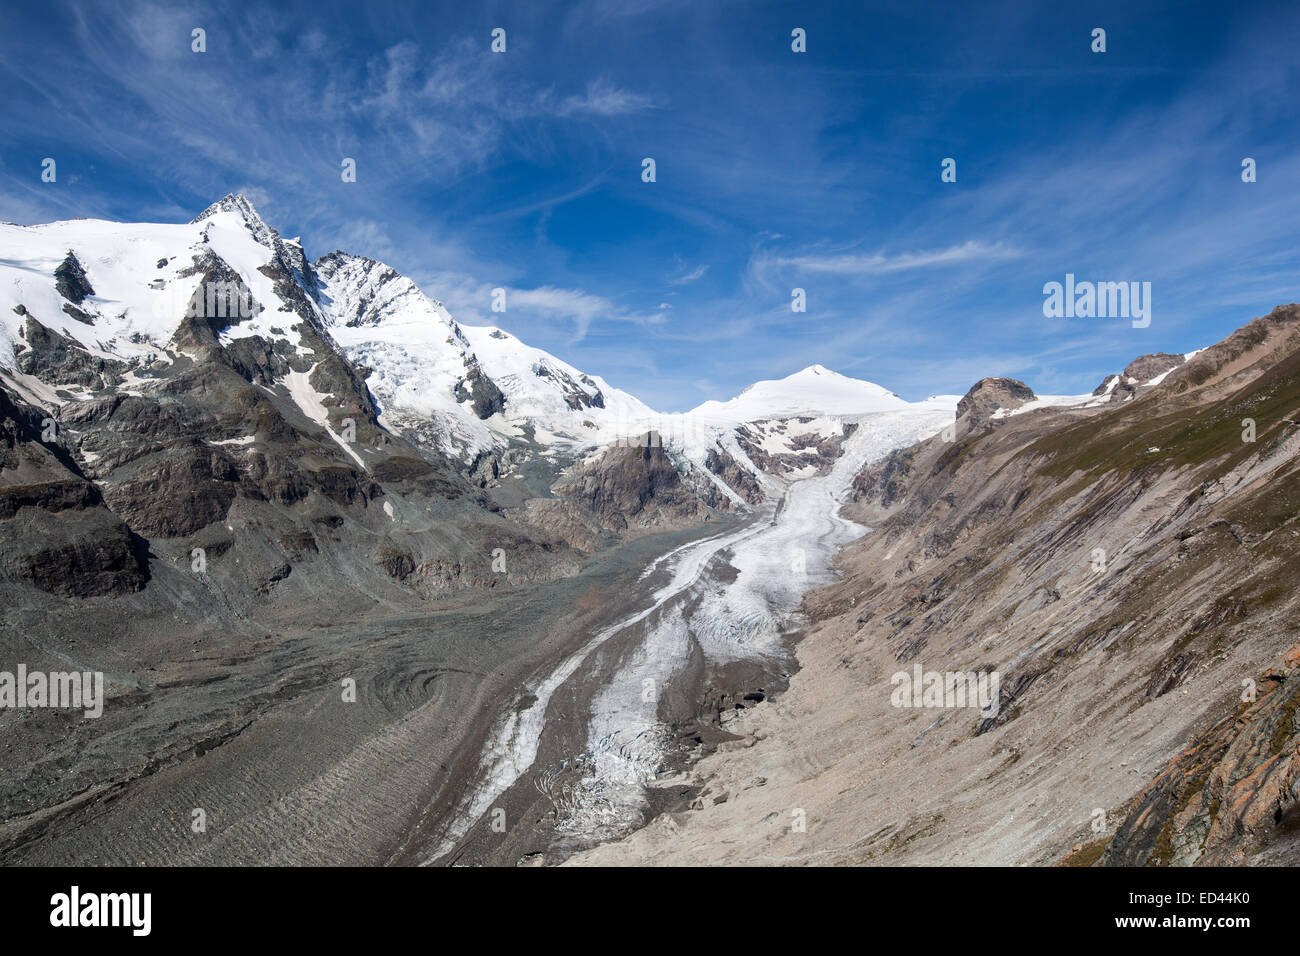 Landscape with high mountain peaks and melting glacier. - Stock Image